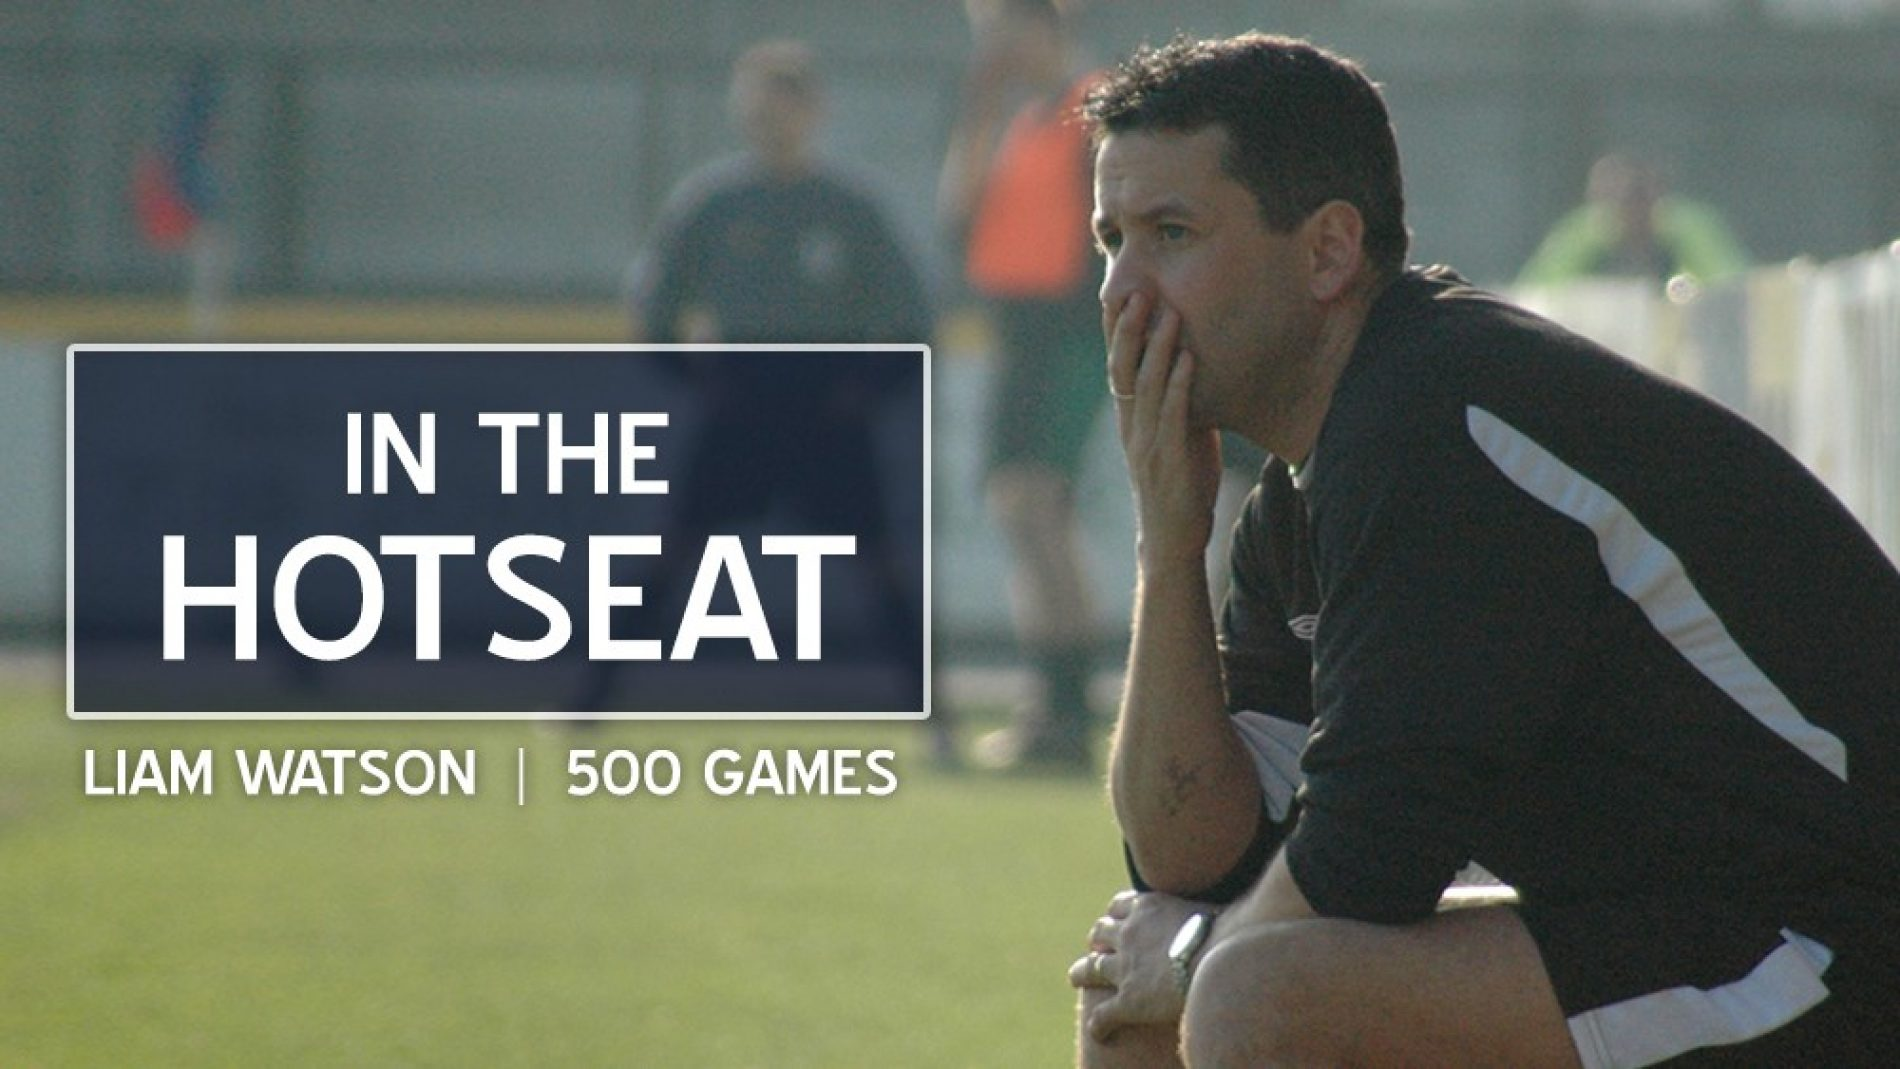 500 GAMES | In The Hotseat